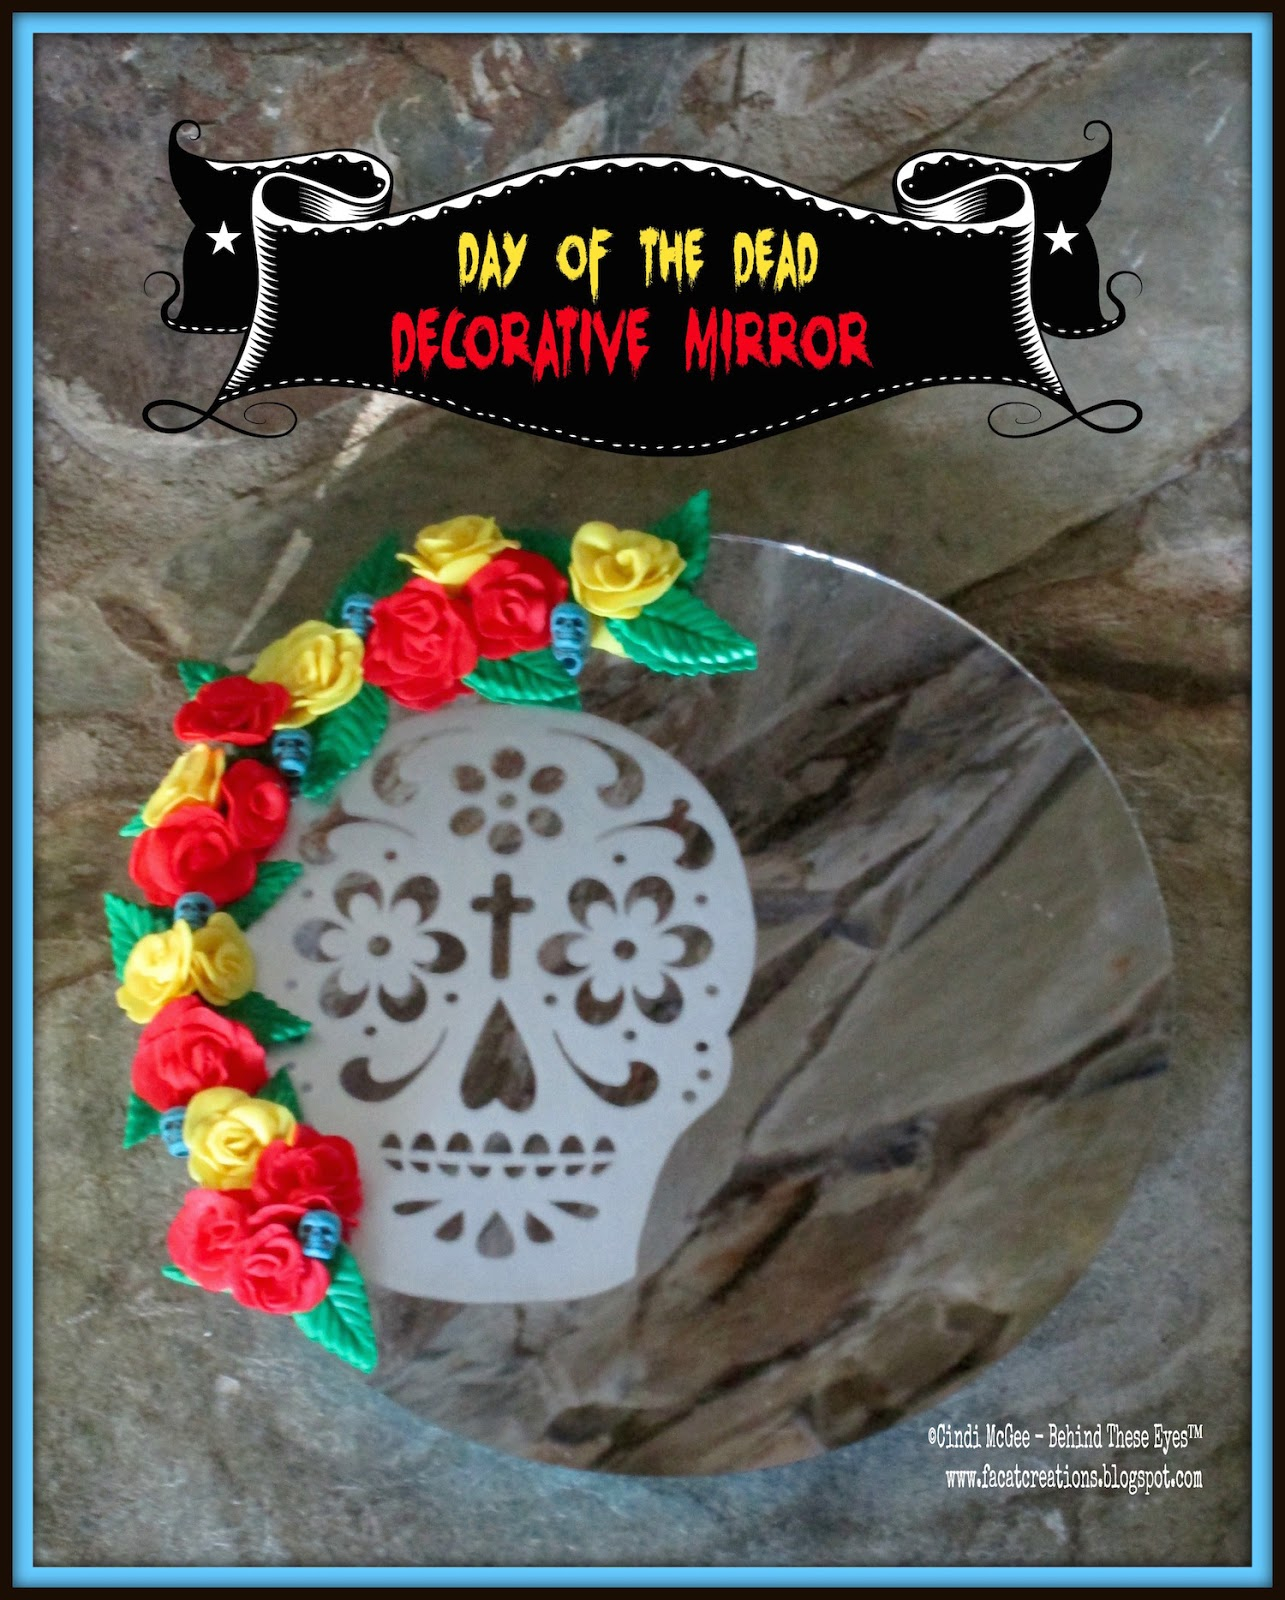 """Day of the Dead Decorative Mirror"" by Cindi Bisson McGee"